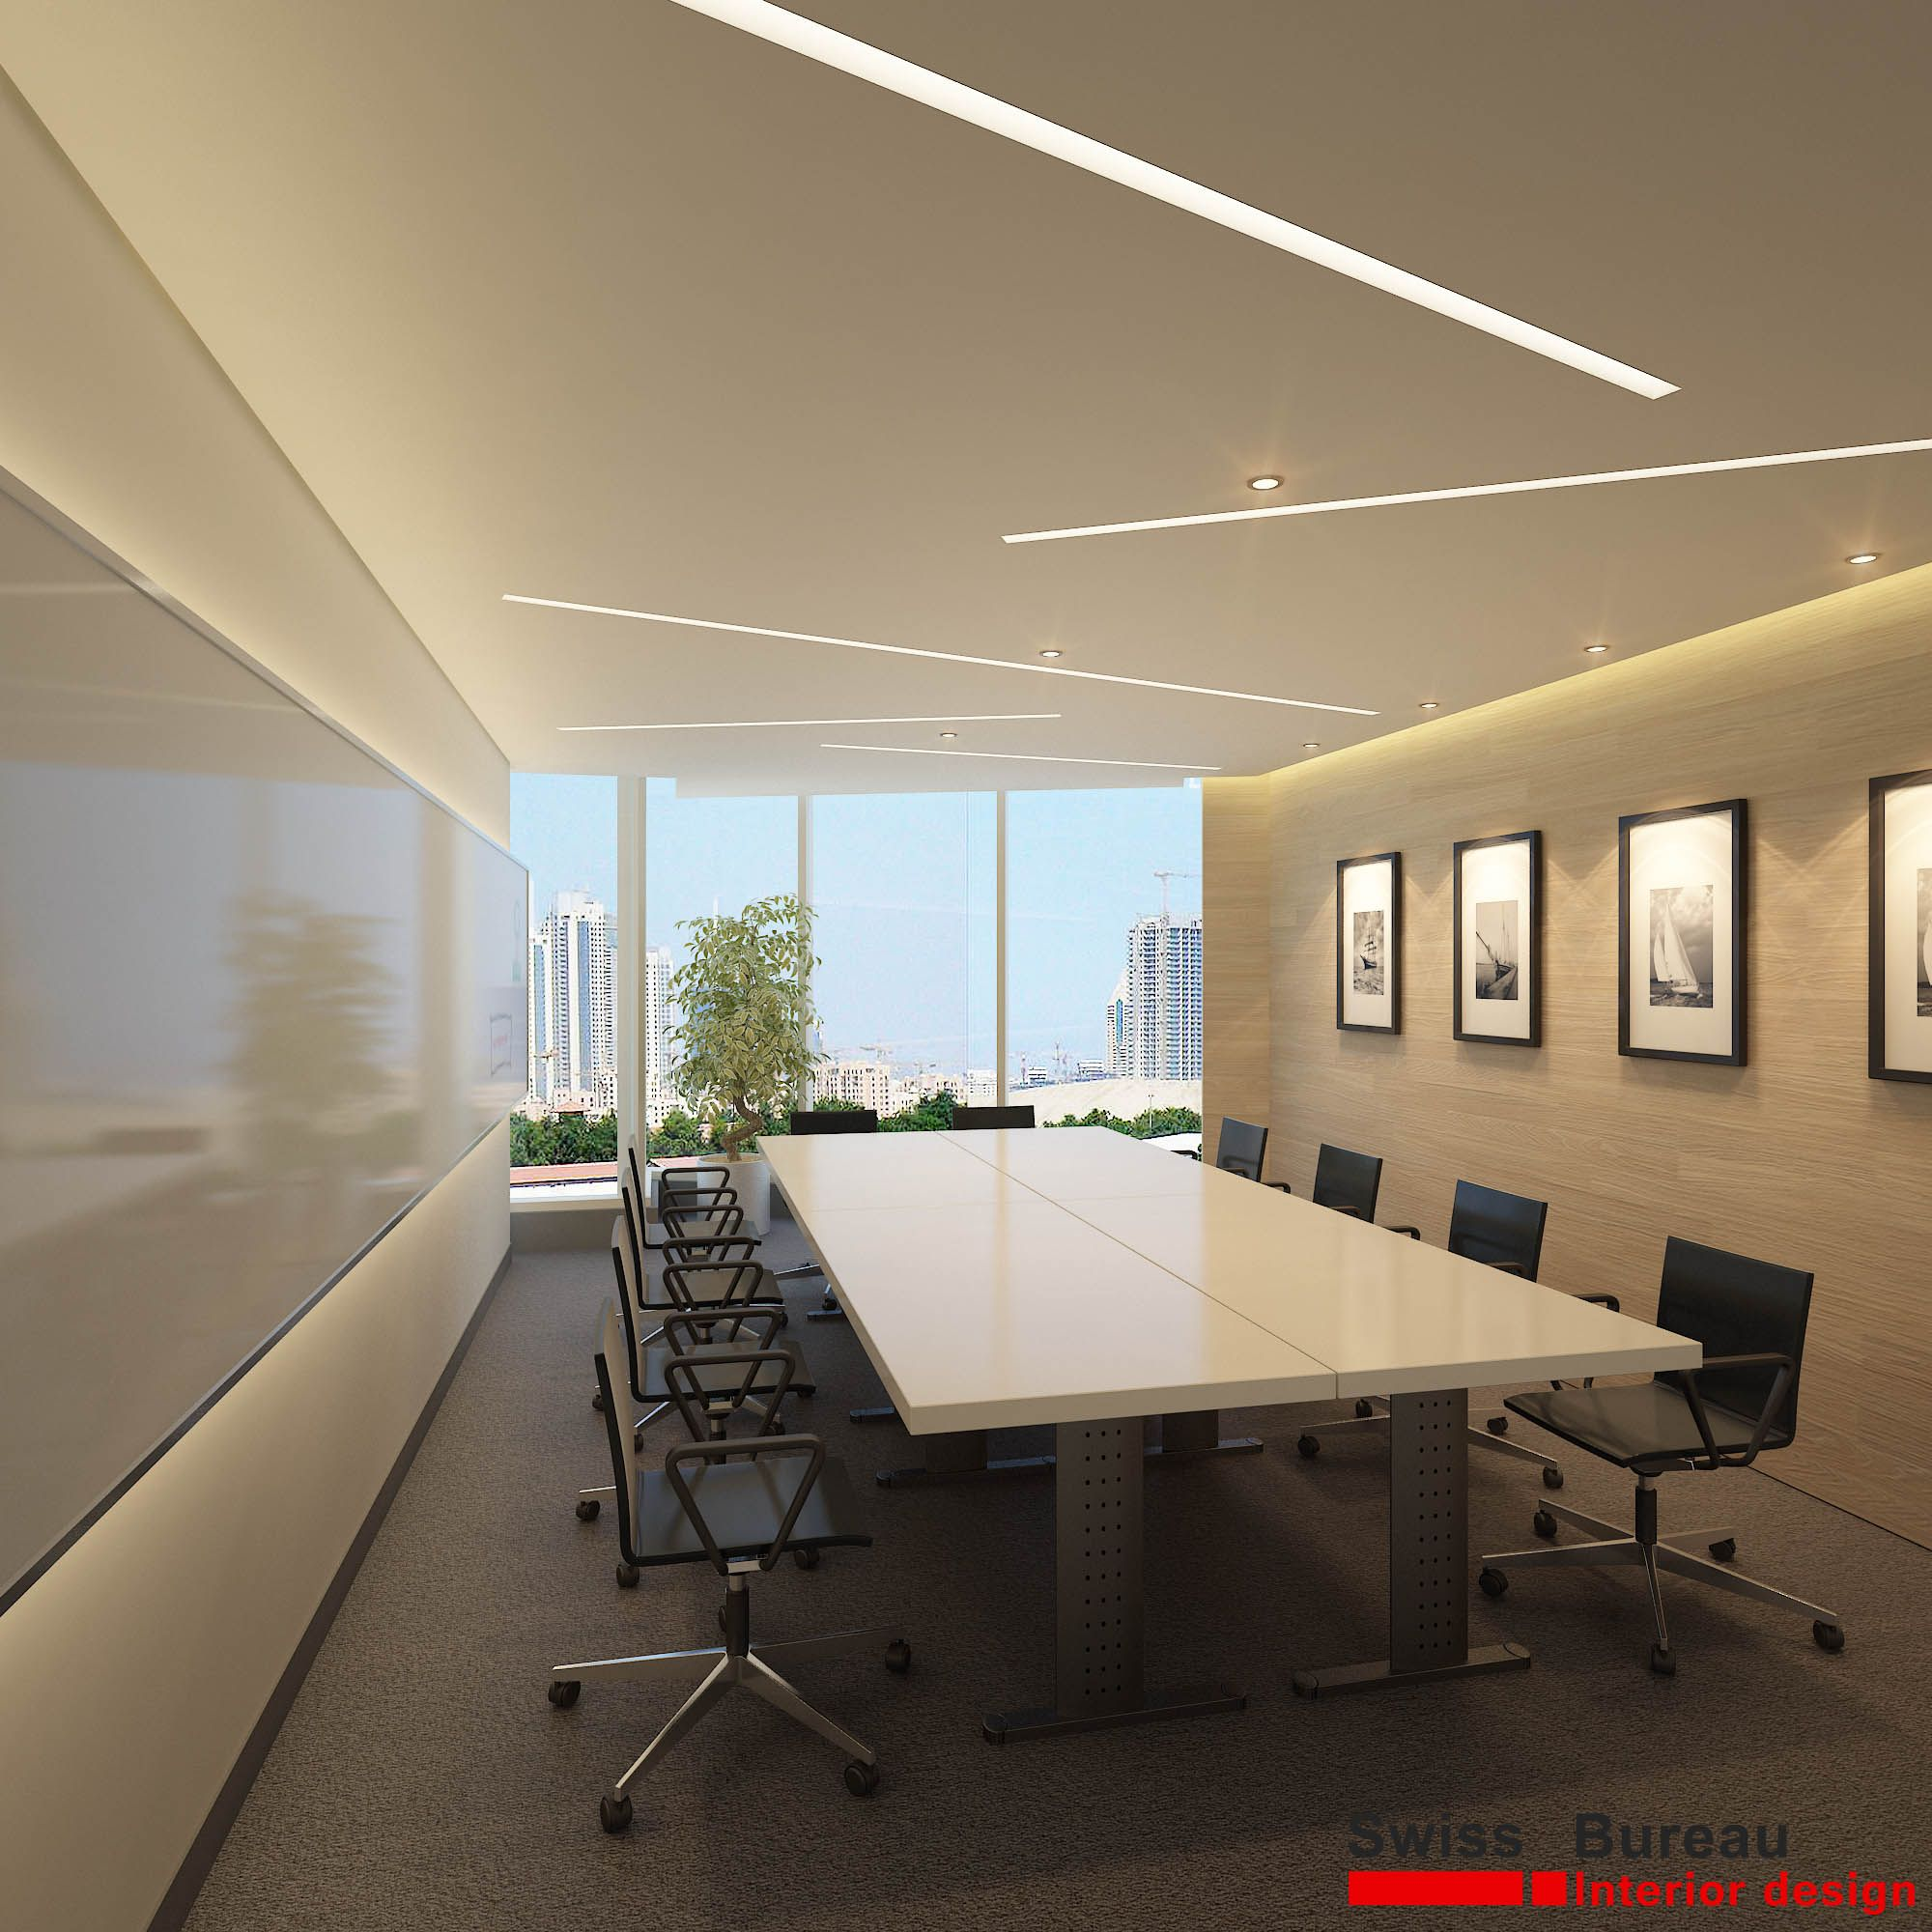 corporate office seminar room ARK Interior provide all type of